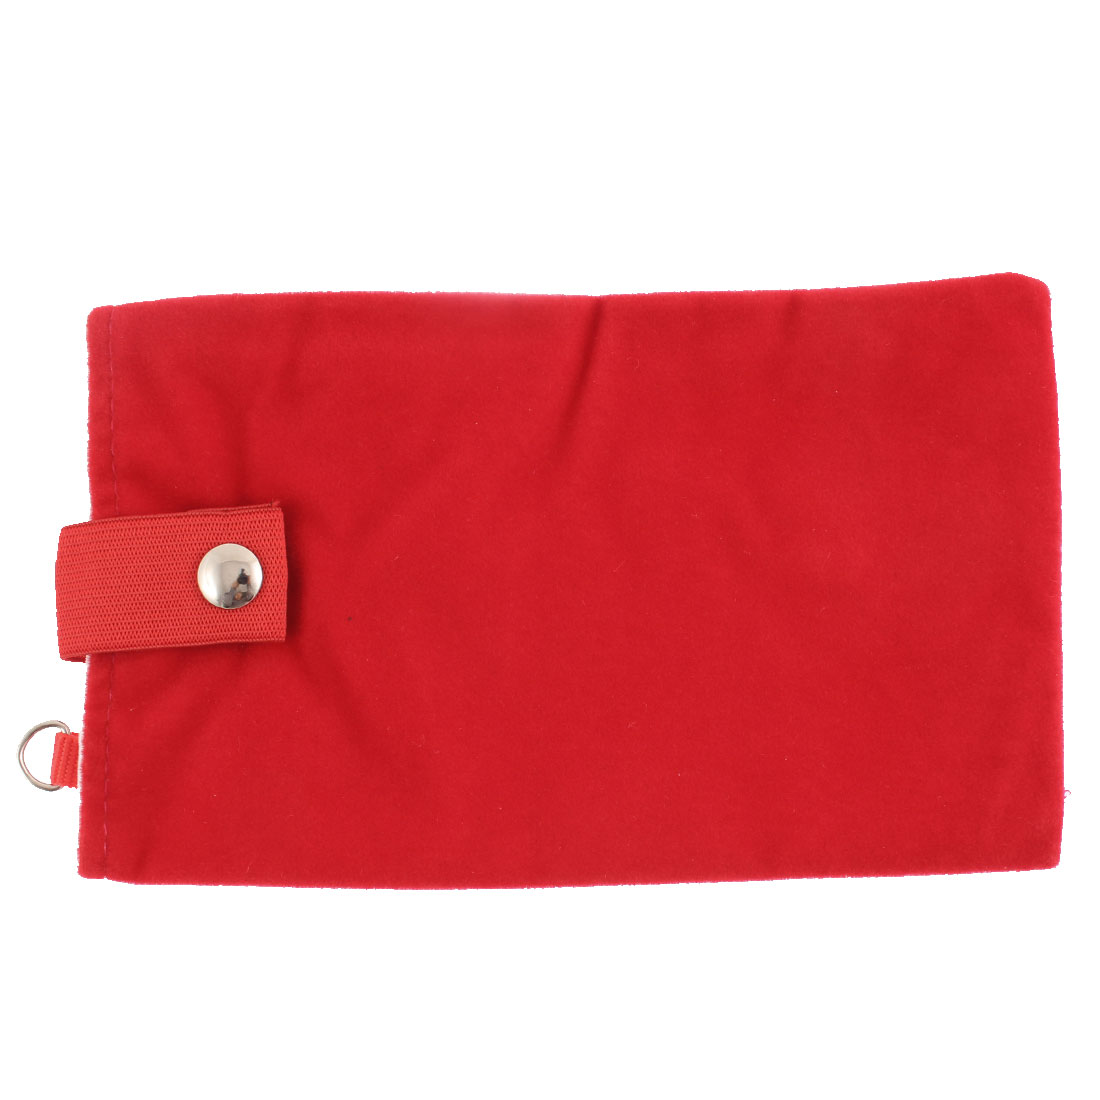 "Magnetic Clasp Button Cell Phone Coin Pouch Sleeve Bag Holder Red 7"" Length"